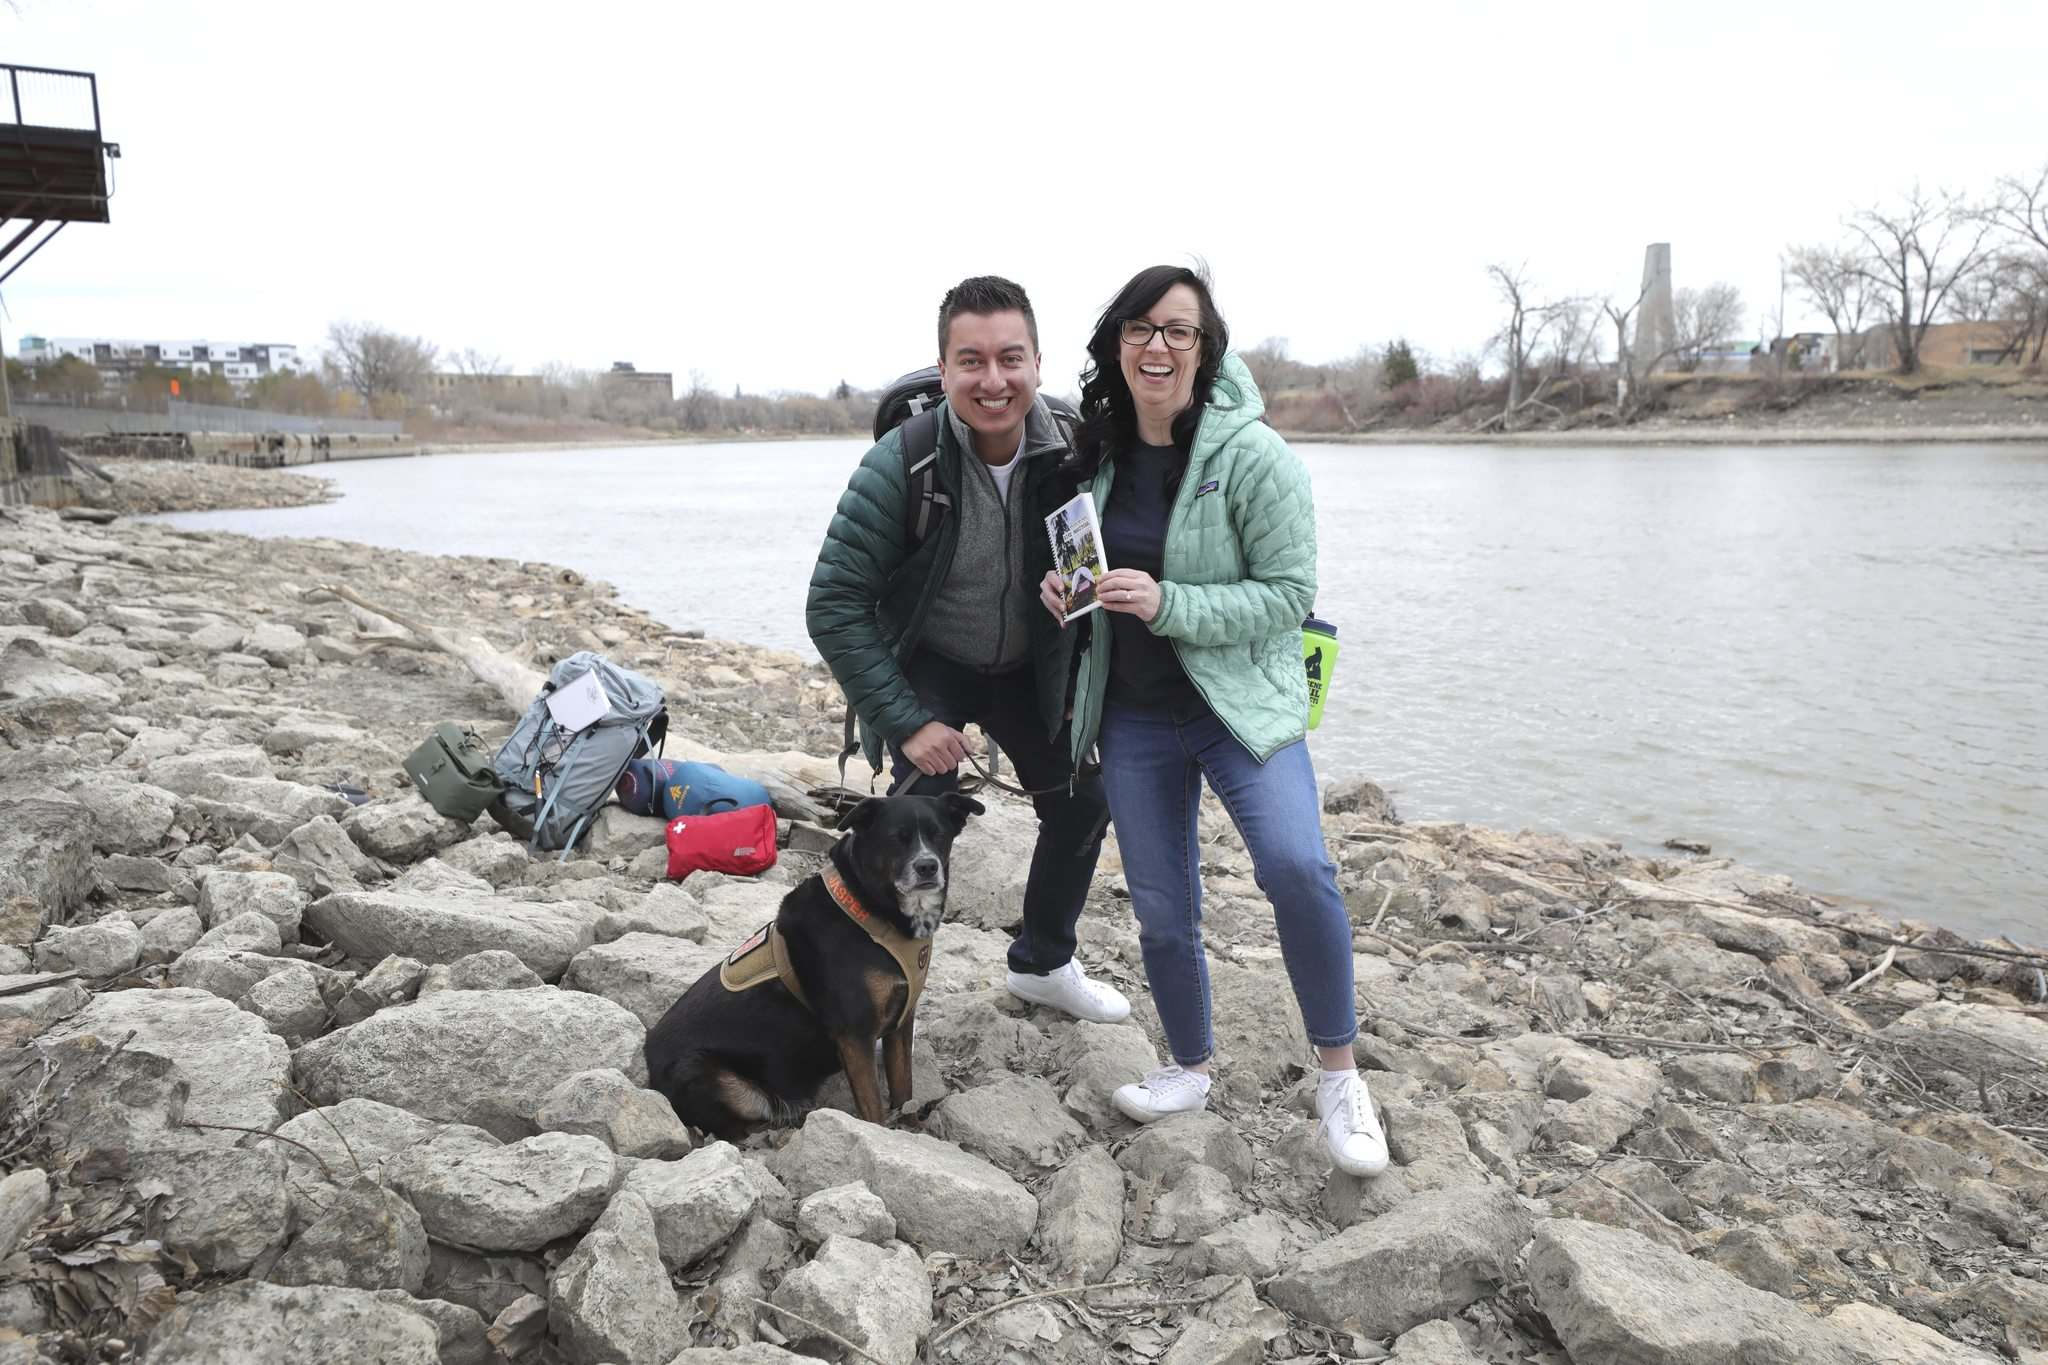 RUTH BONNEVILLE / WINNIPEG FREE PRESS</p><p>Jaime Manness, right, heads out almost every weekend with her fiancé, Ed Acuna, and their dog Jasper to explore the many hiking trails Manitoba has to offer.</p></p>